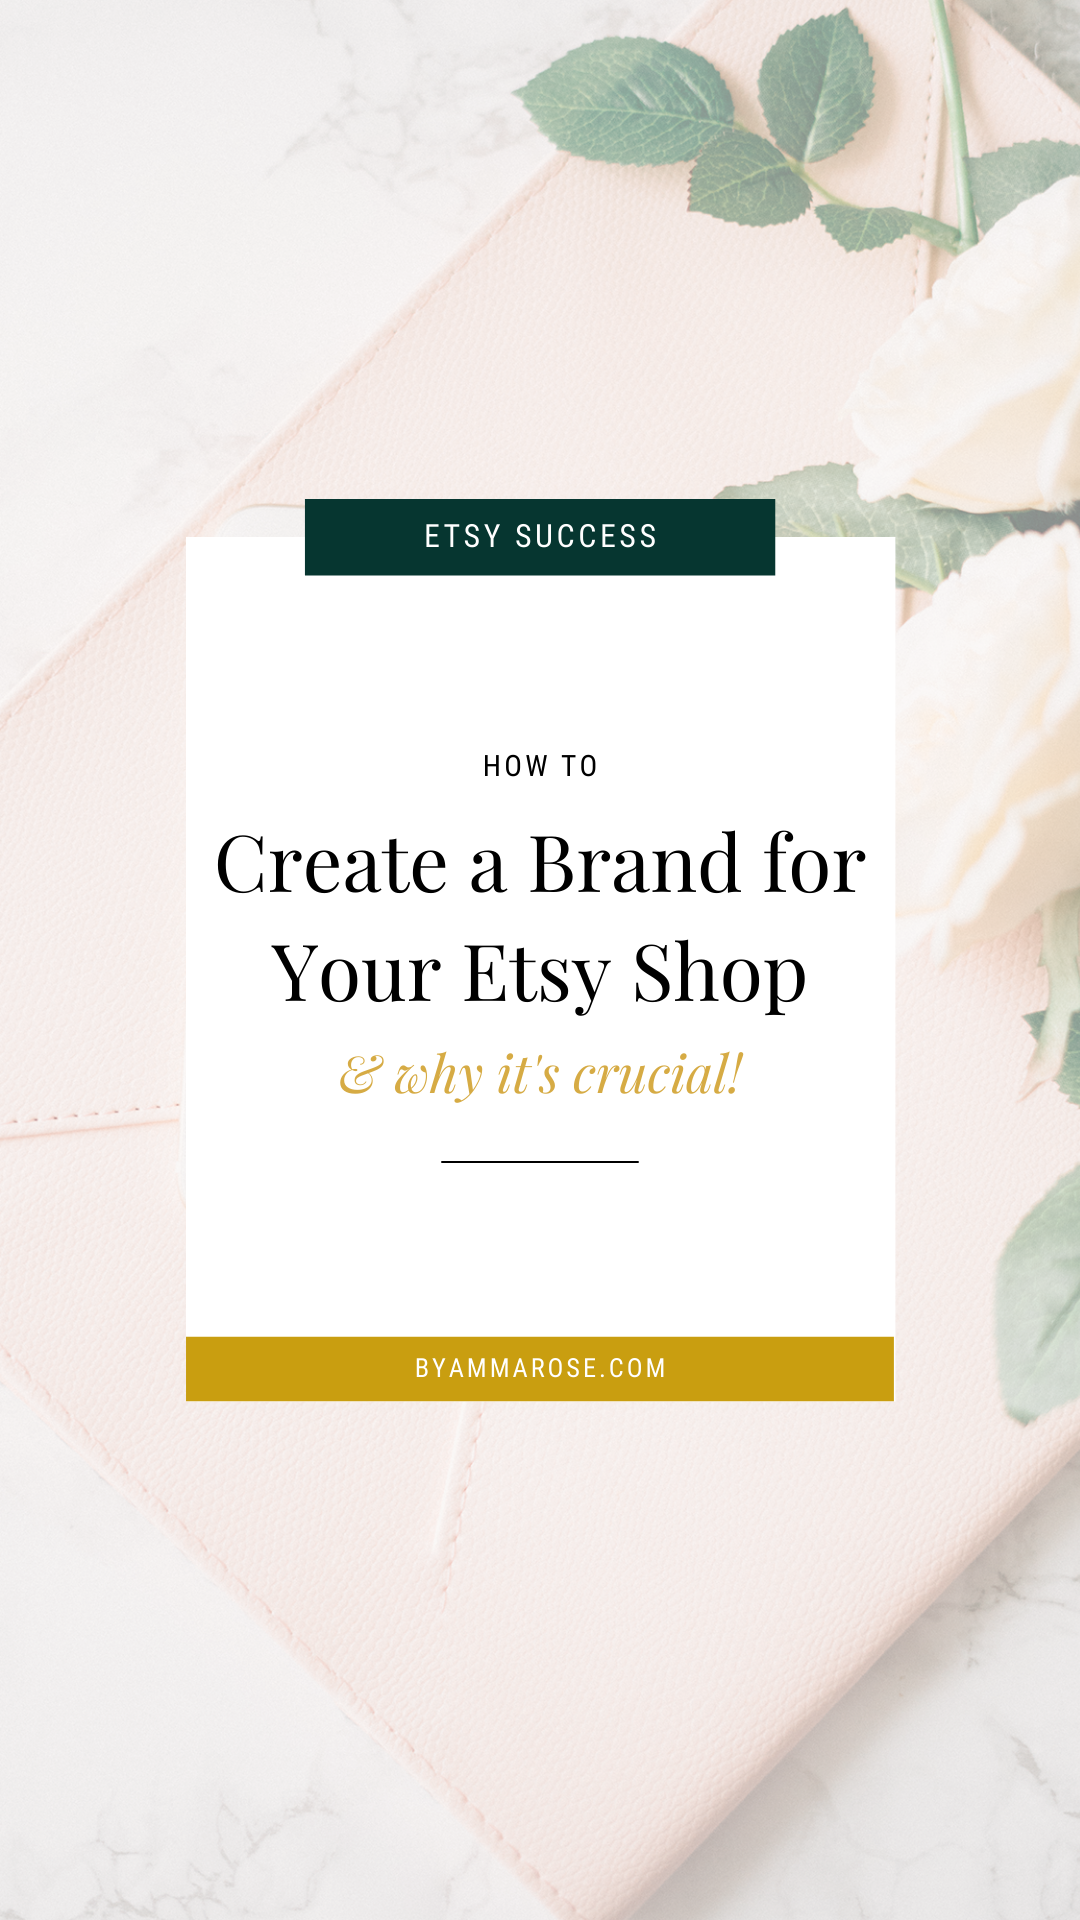 How To Create A Brand For Your Etsy Shop